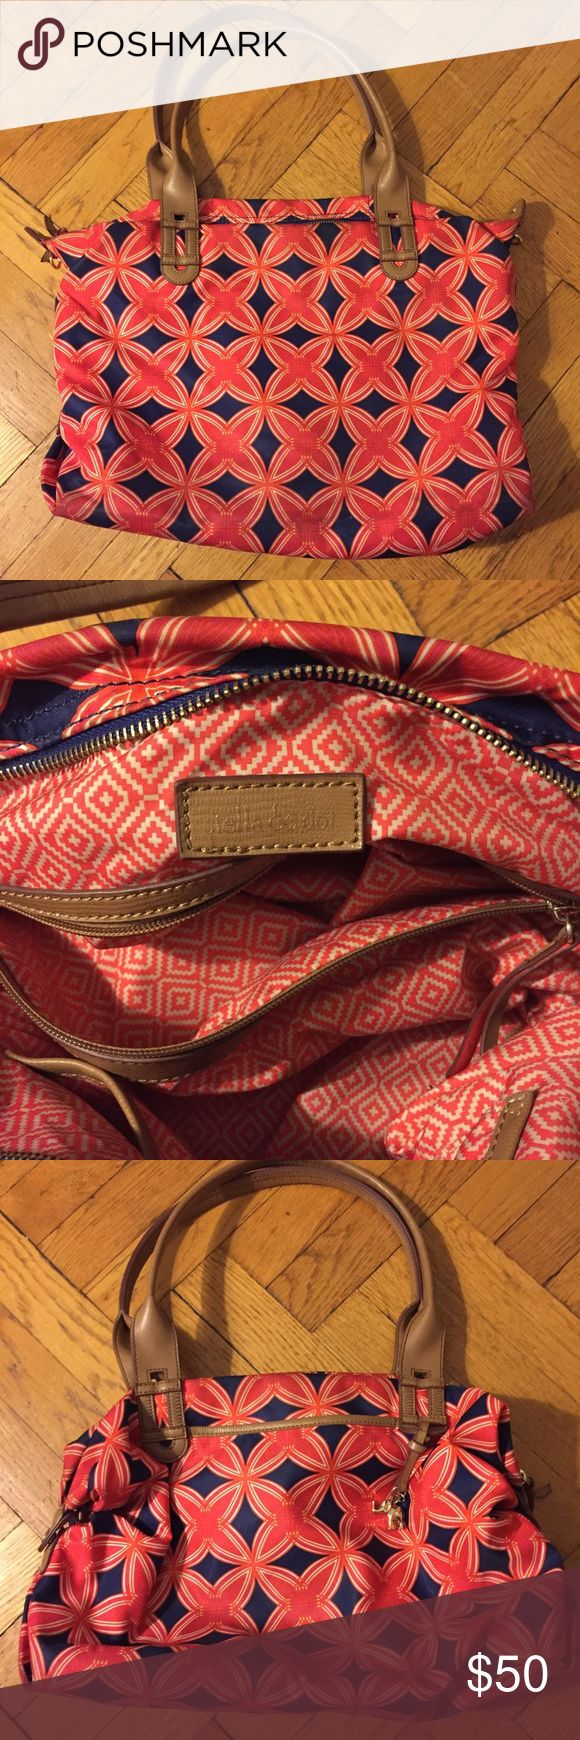 "Stella & Dot red geometric floral purse Priced to sell!! Great condition, some light wear on the bottom can be washed or spot treated. Good hardware with elephant charm. Pockets inside. Measures 17"" x 13"" x 5"" with 10"" strap drop Stella & Dot Bags Shoulder Bags"